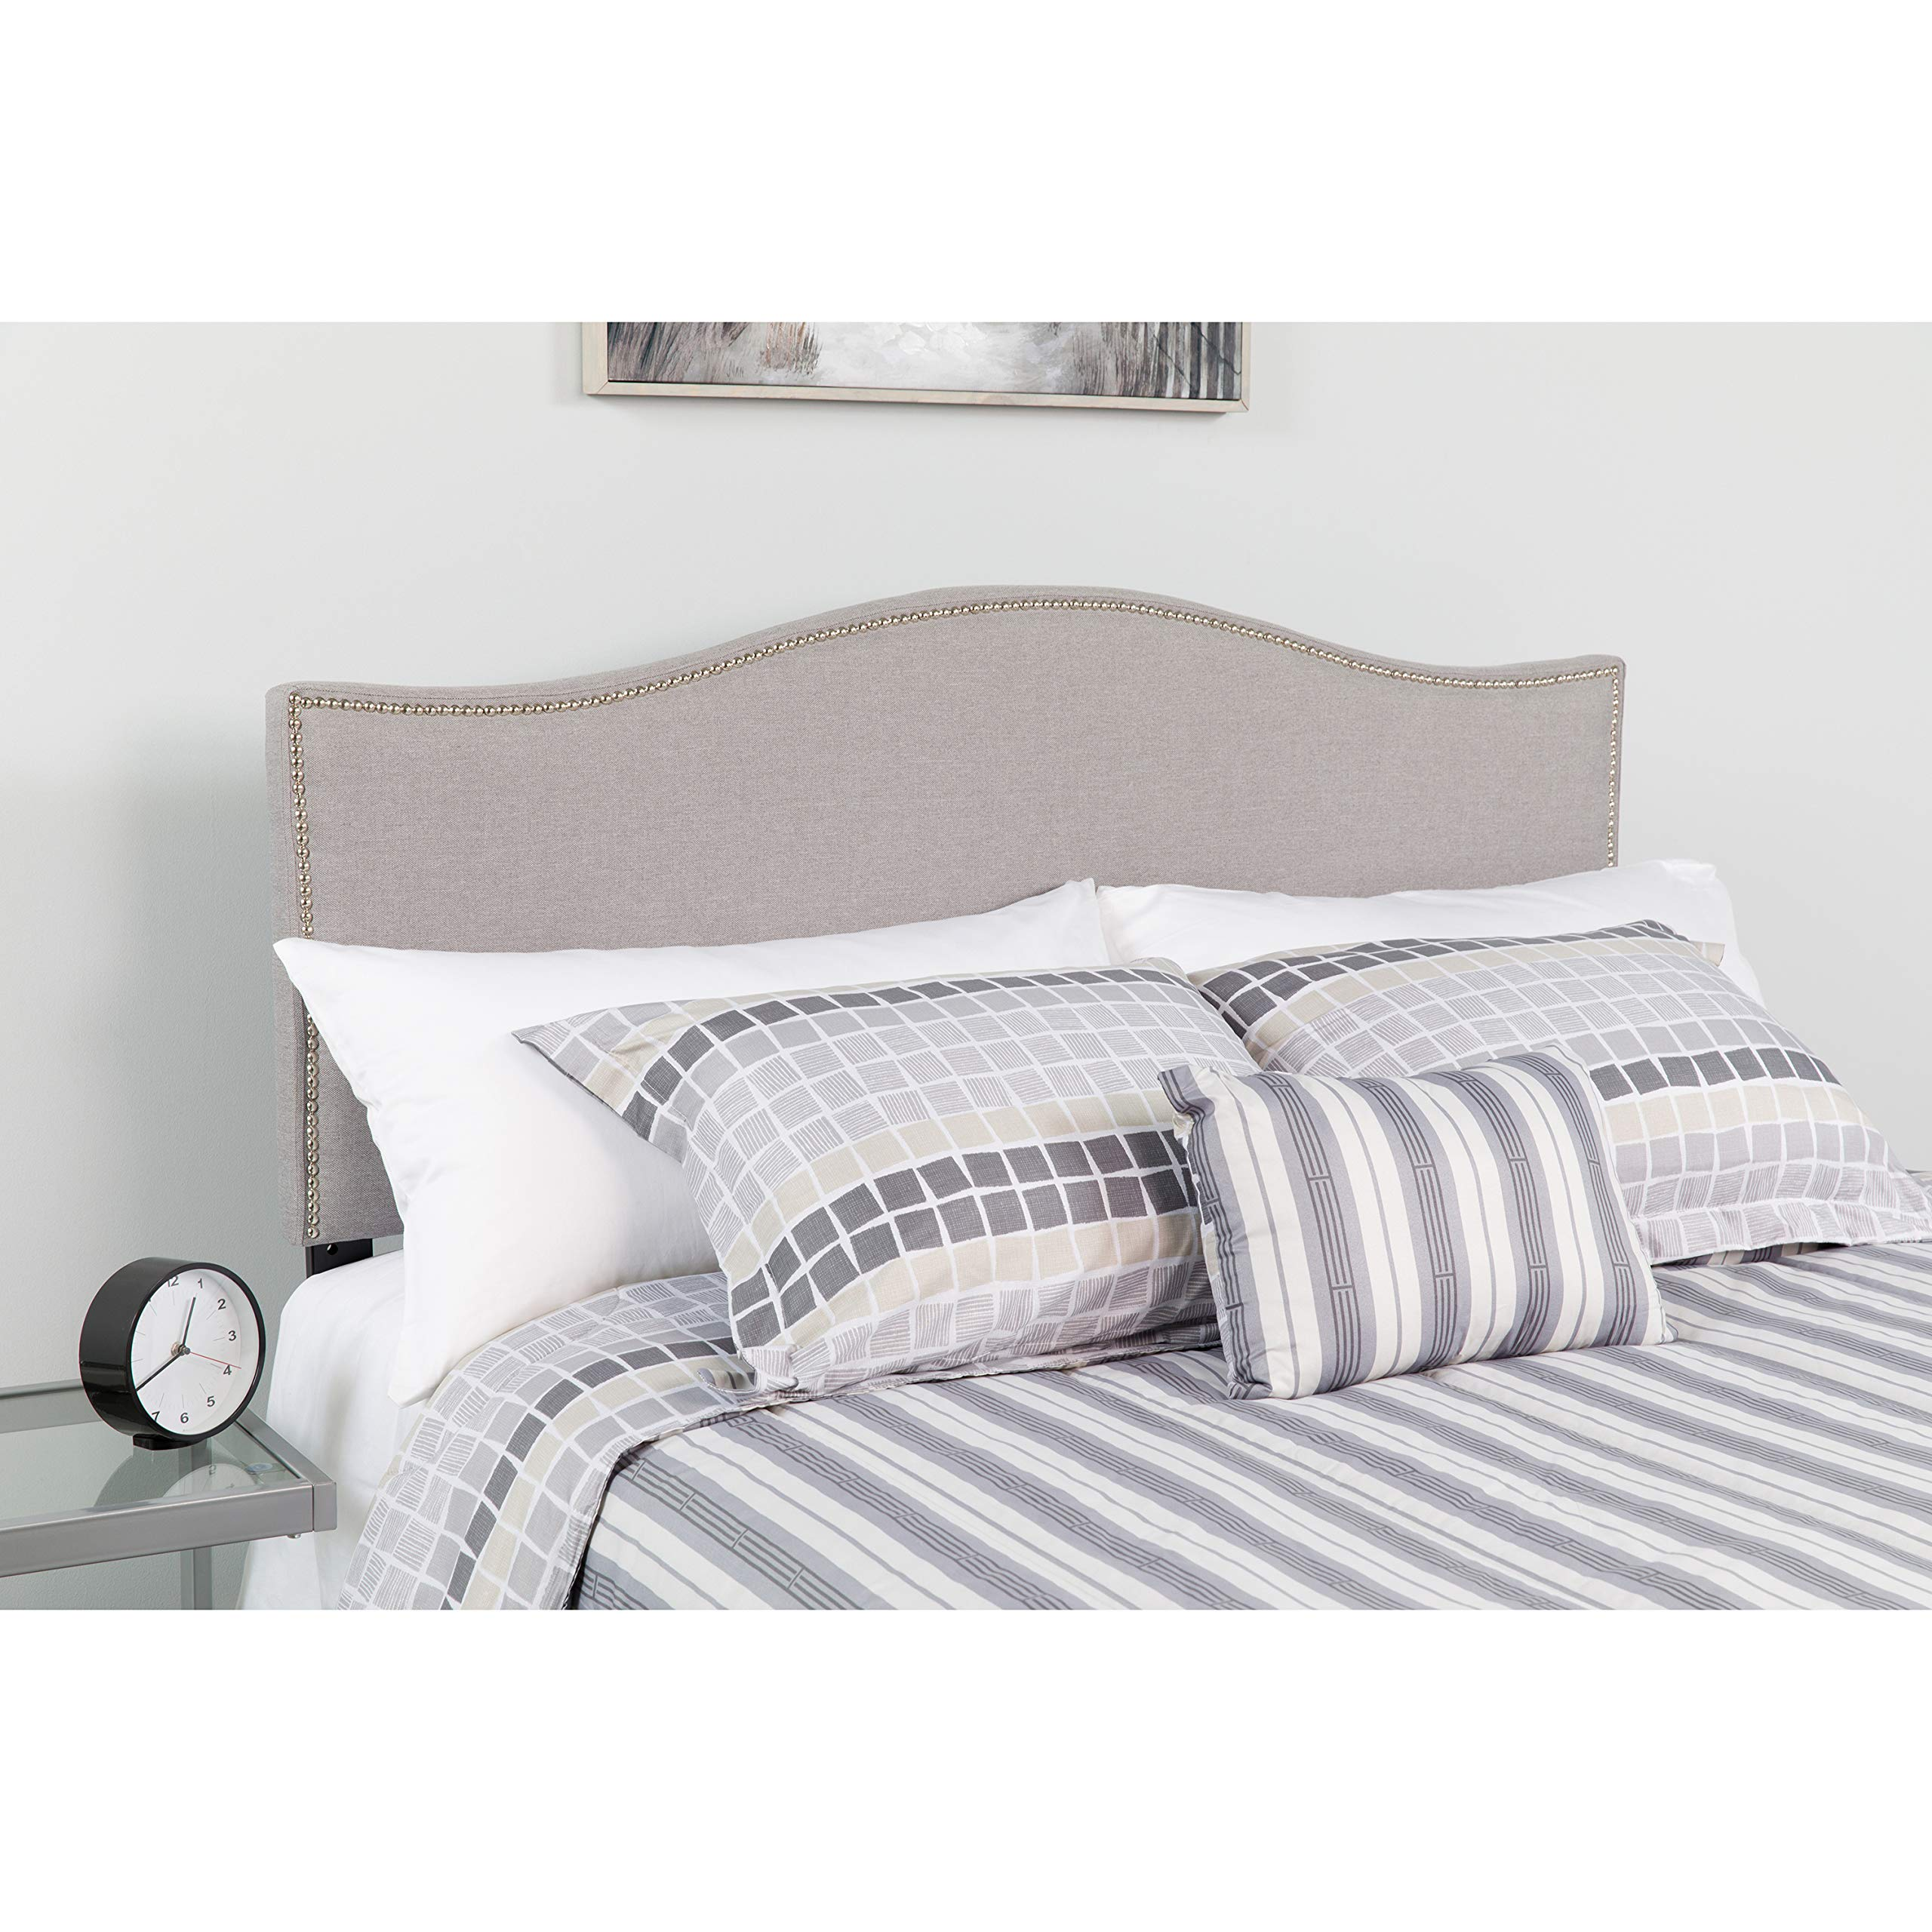 Flash Furniture Lexington Upholstered Queen Size Headboard with Accent Nail Trim in Light Gray Fabric